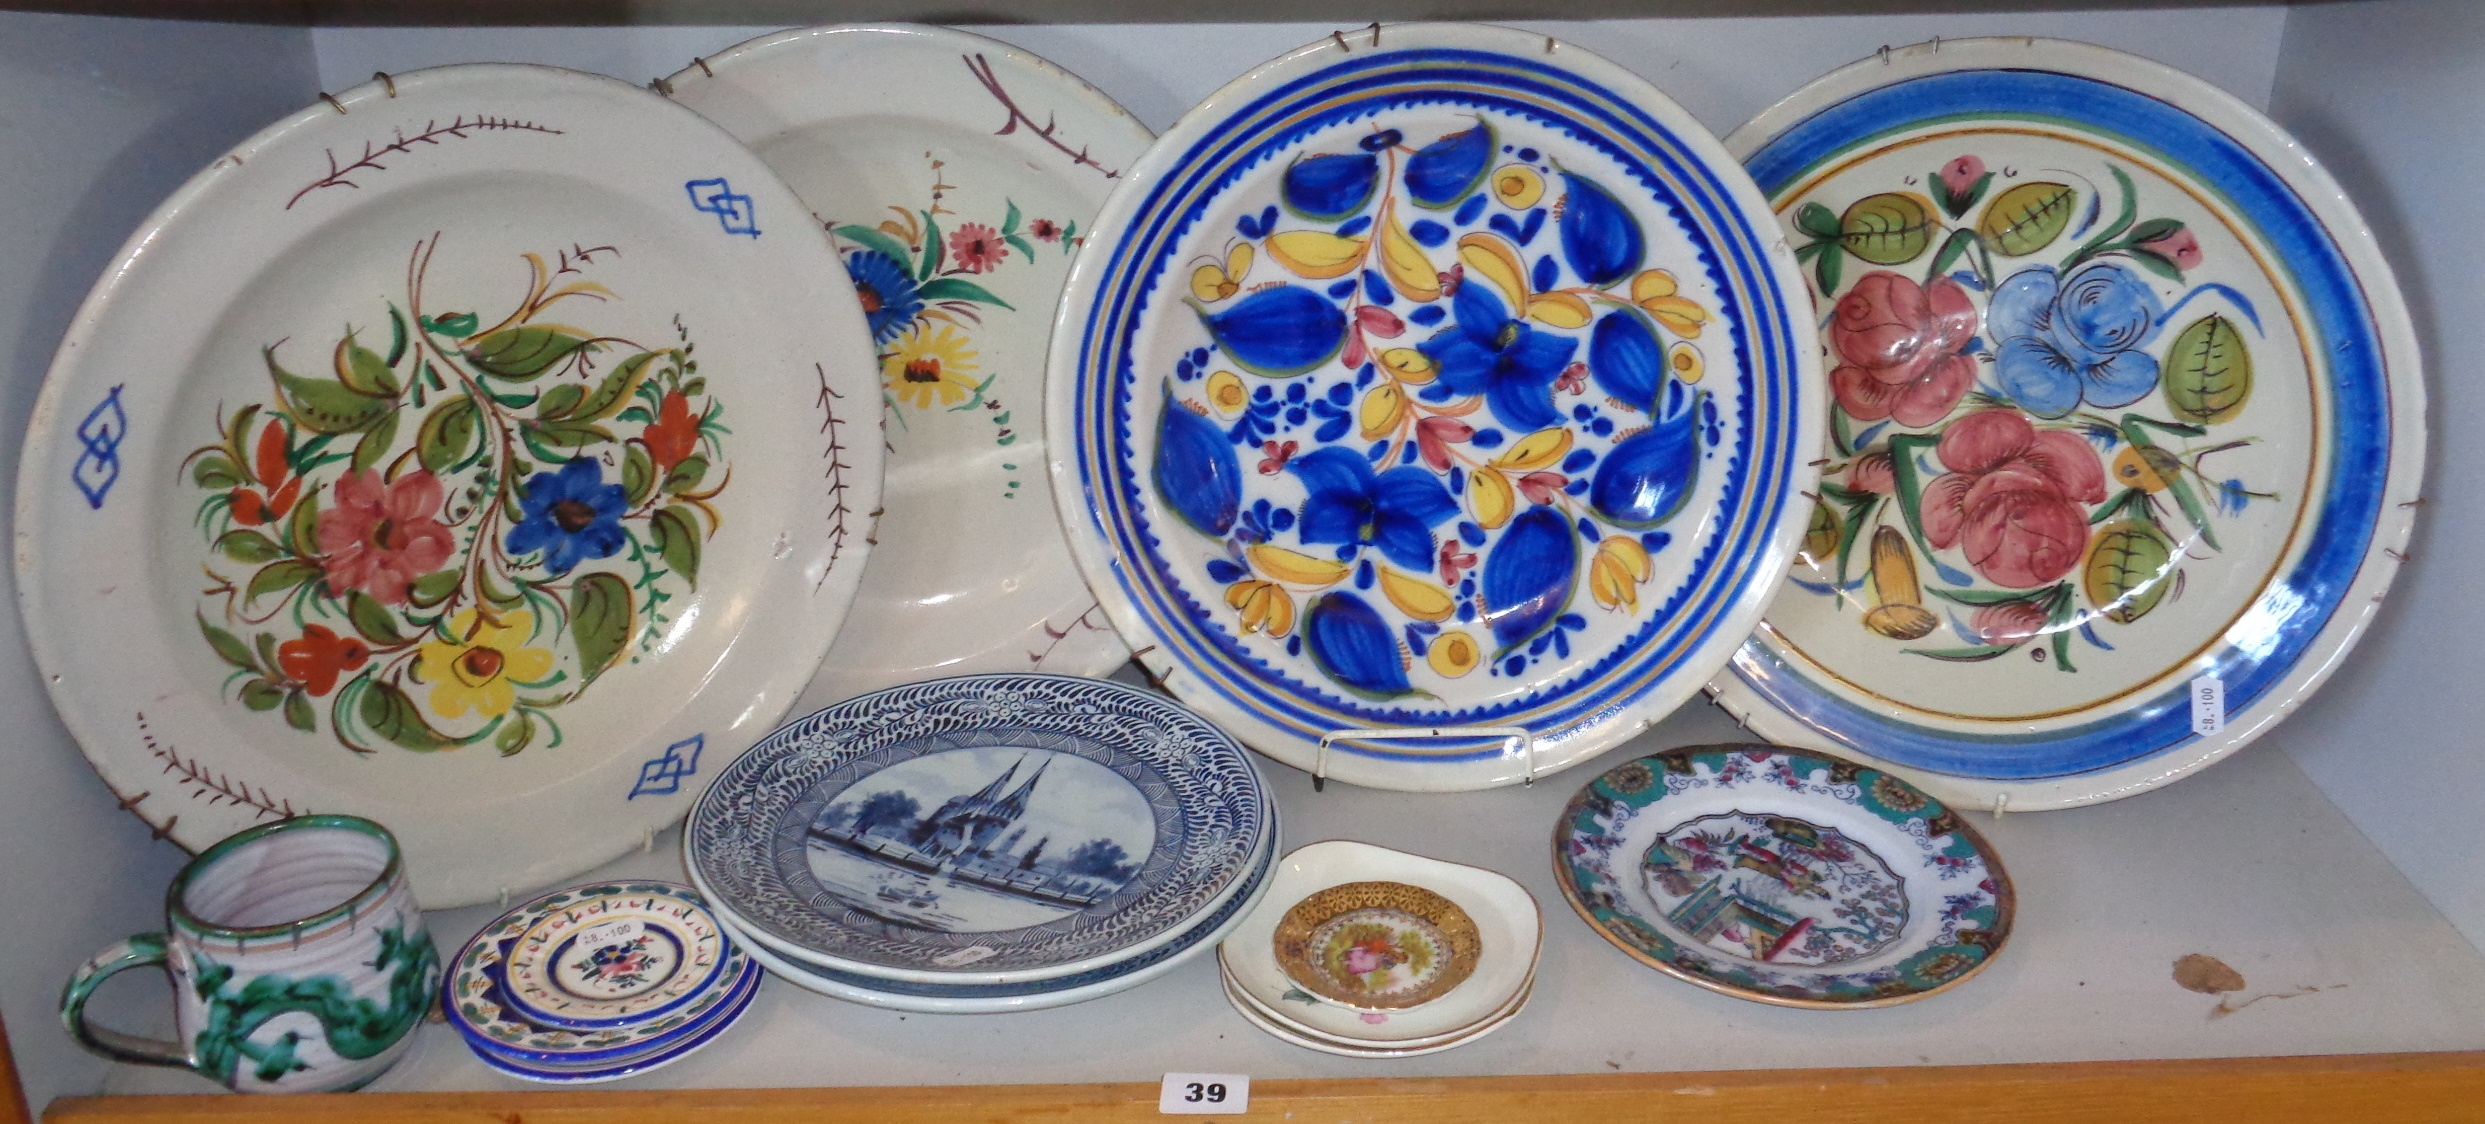 "Lot 39 - Four Continental polychrome floral tin glaze chargers (one marked verso ""J.C."") and other ceramics"